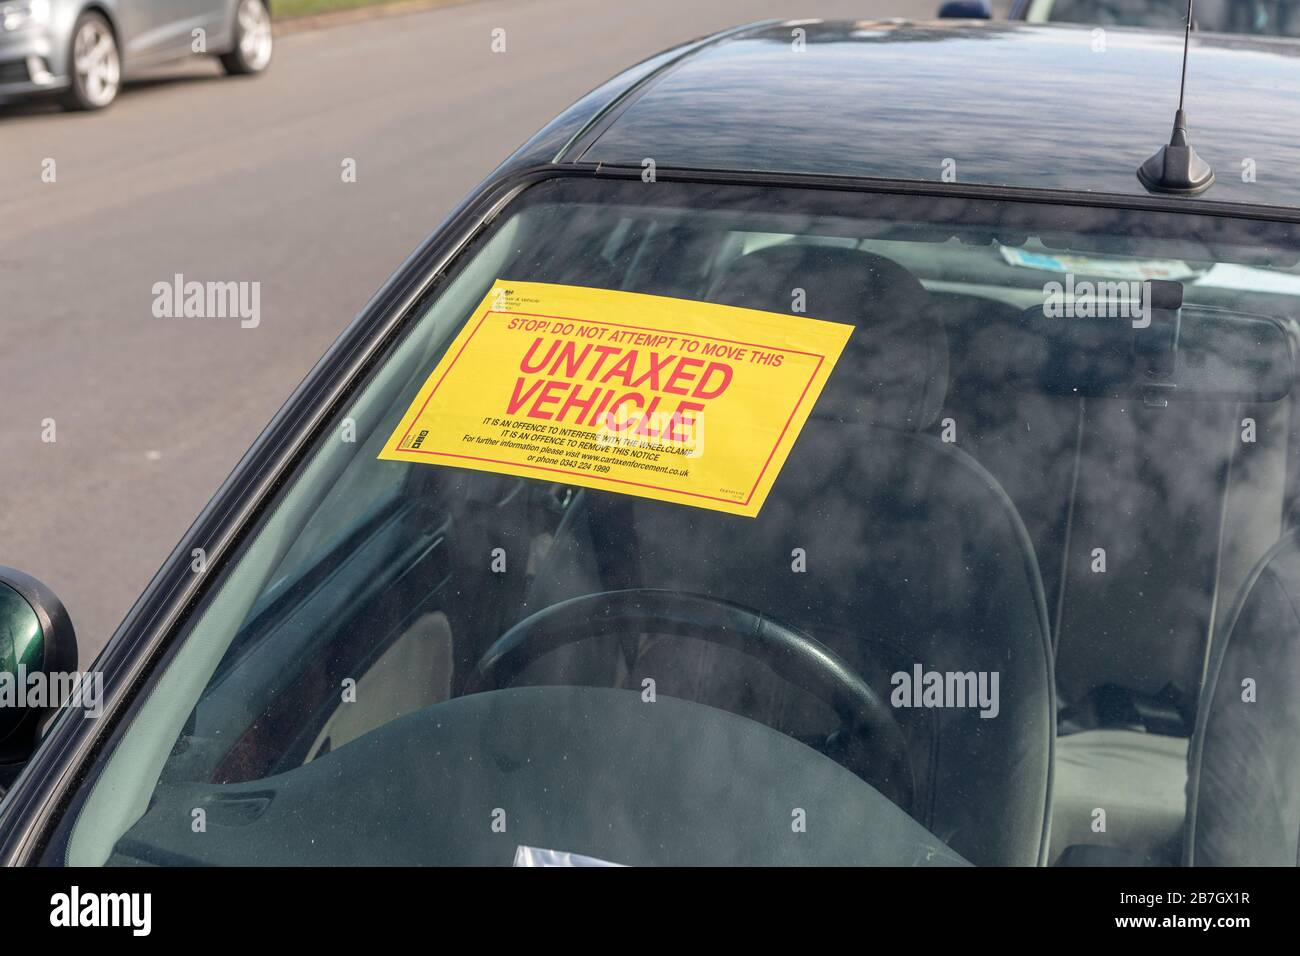 An untaxed vehicle sign. Stock Photo